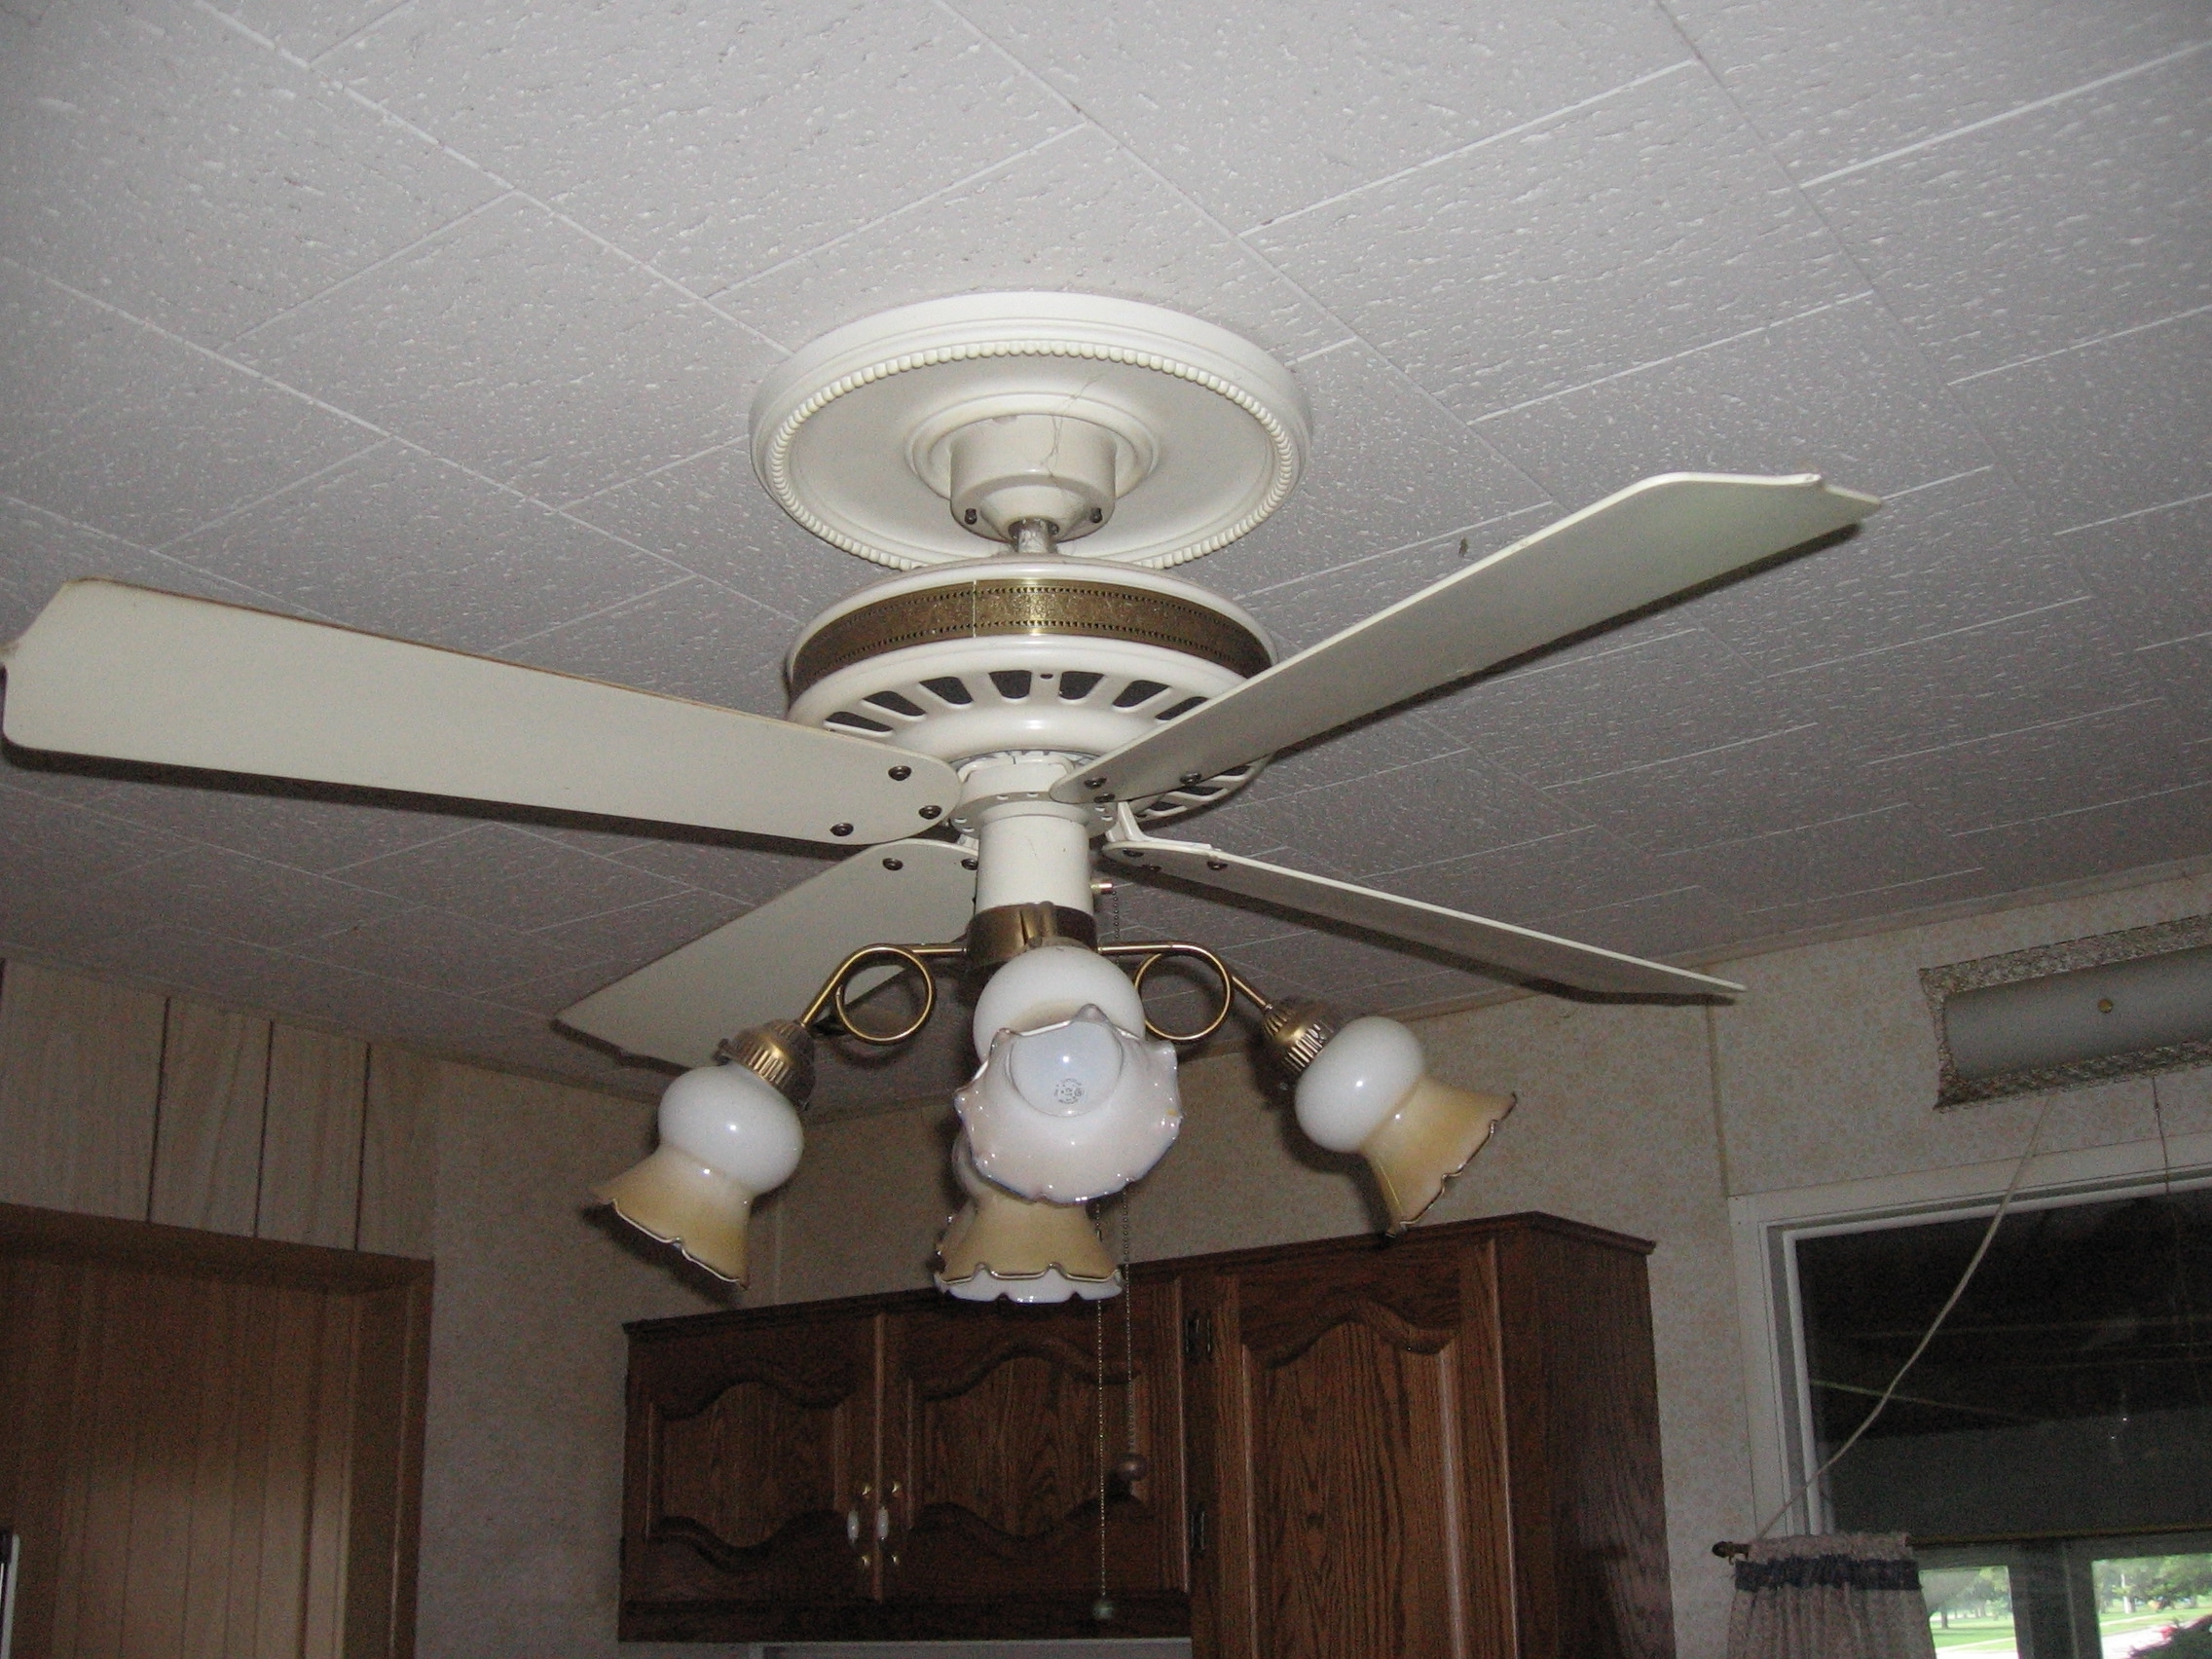 Best And Newest Ceiling Fans Hunter Ceiling Fan Menards Fans Outdoor With Lights With Regard To Outdoor Ceiling Fans At Menards (View 10 of 20)